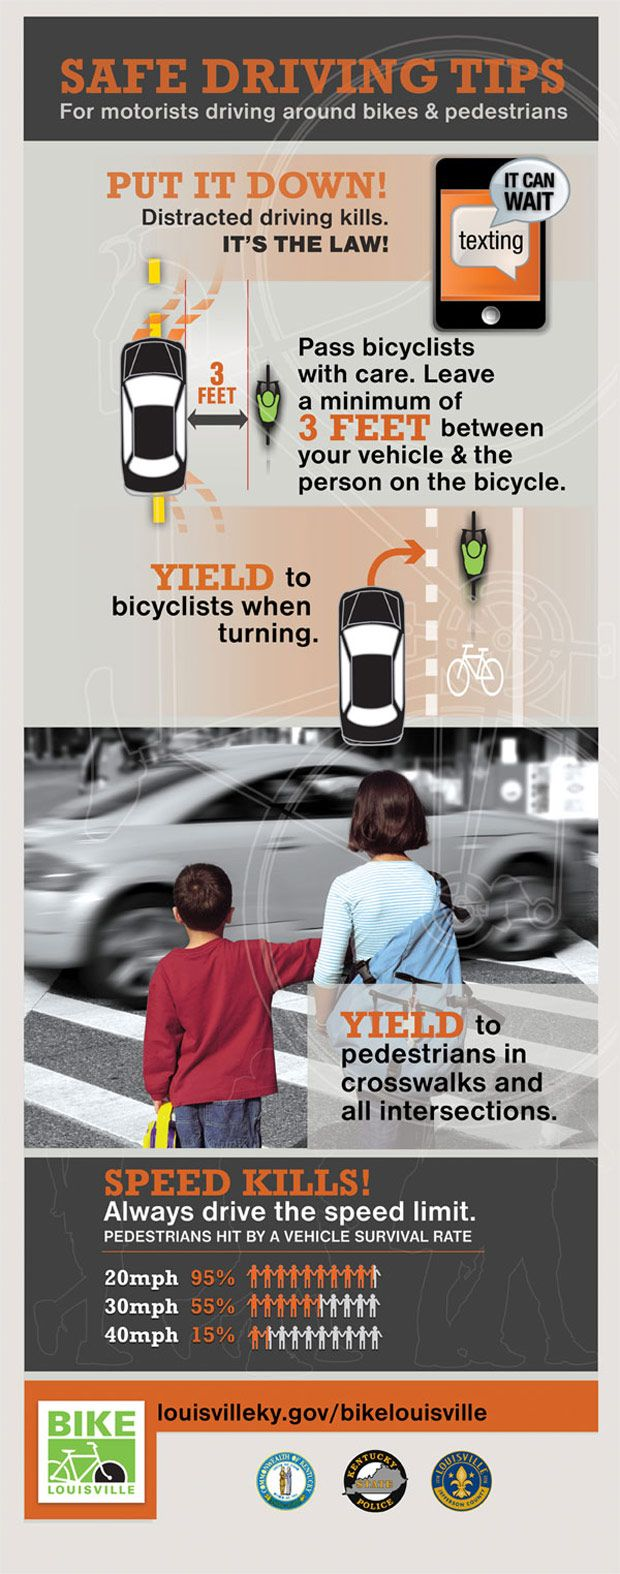 Safe Driving Tips - for motorists driving around bikes  pedestrians. Call me at 928-227-9001 ext. 09213 or email at adam.england@libertymutual.com to learn more